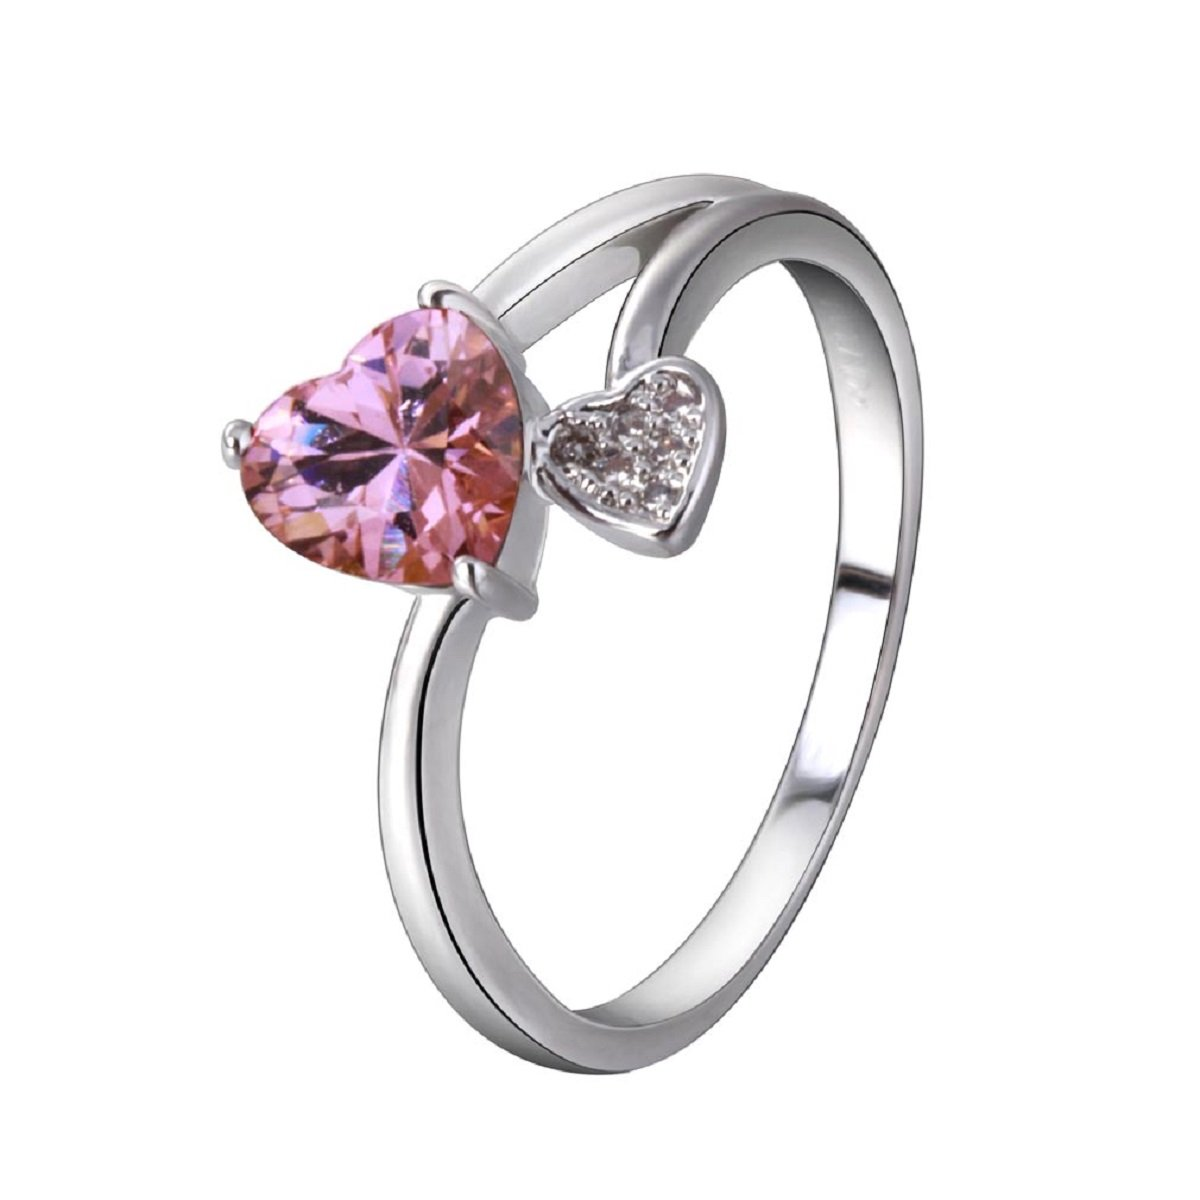 YAZILIND Promise Ring Silver Plated Pink Cubic Zirconia Double Heart Wedding Band Ring Size 7